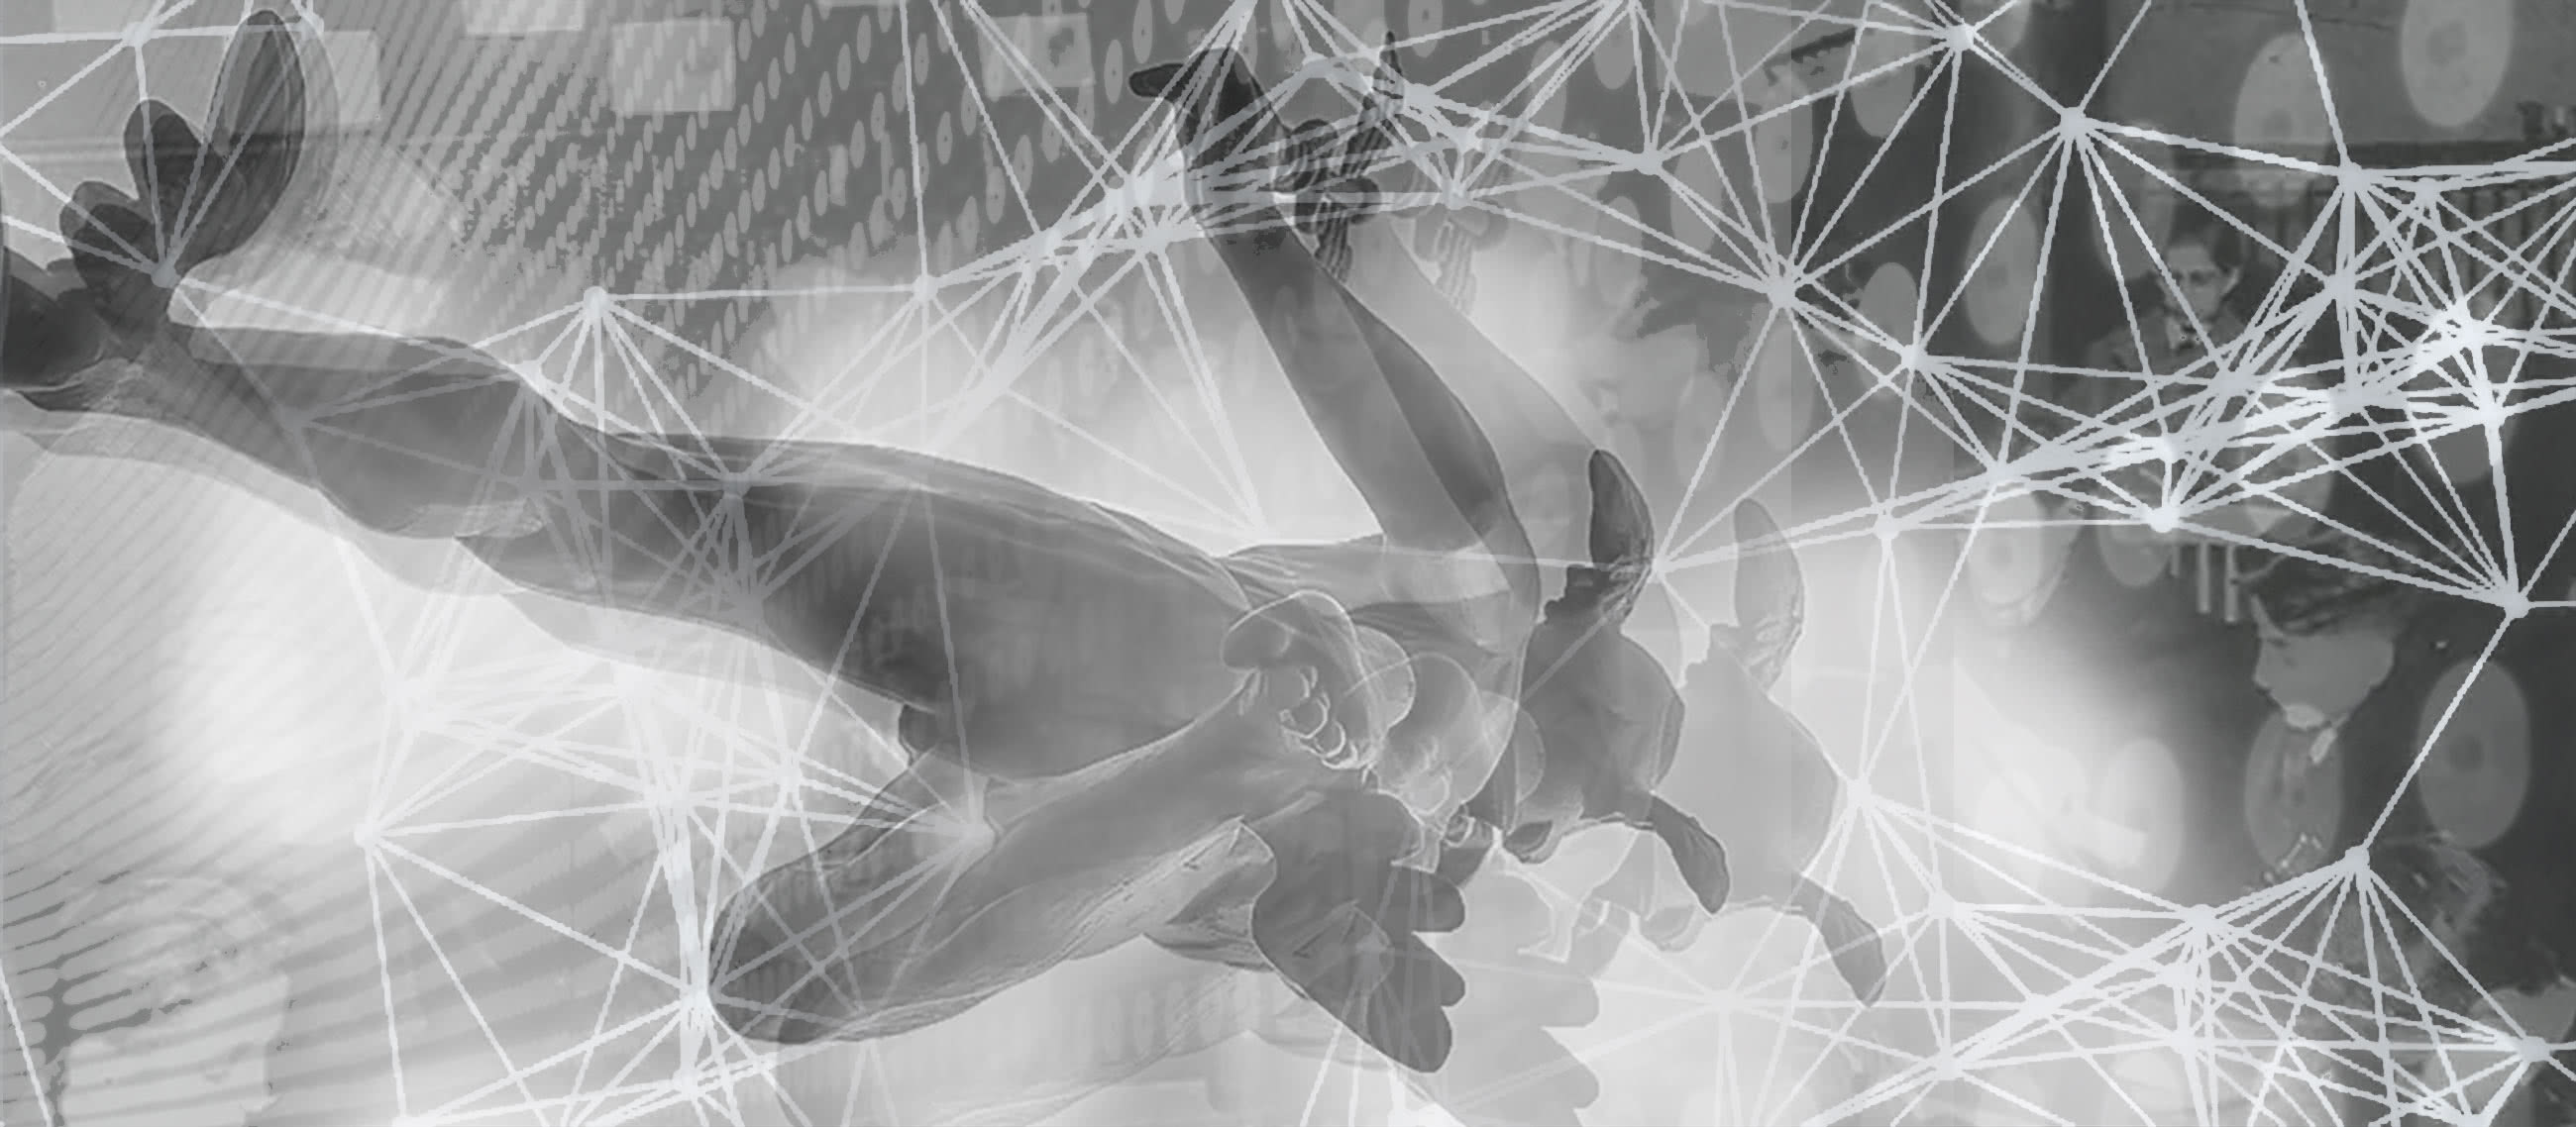 Photomontage depicting Hermes flying into complicated-looking retro-futuristic shapes.